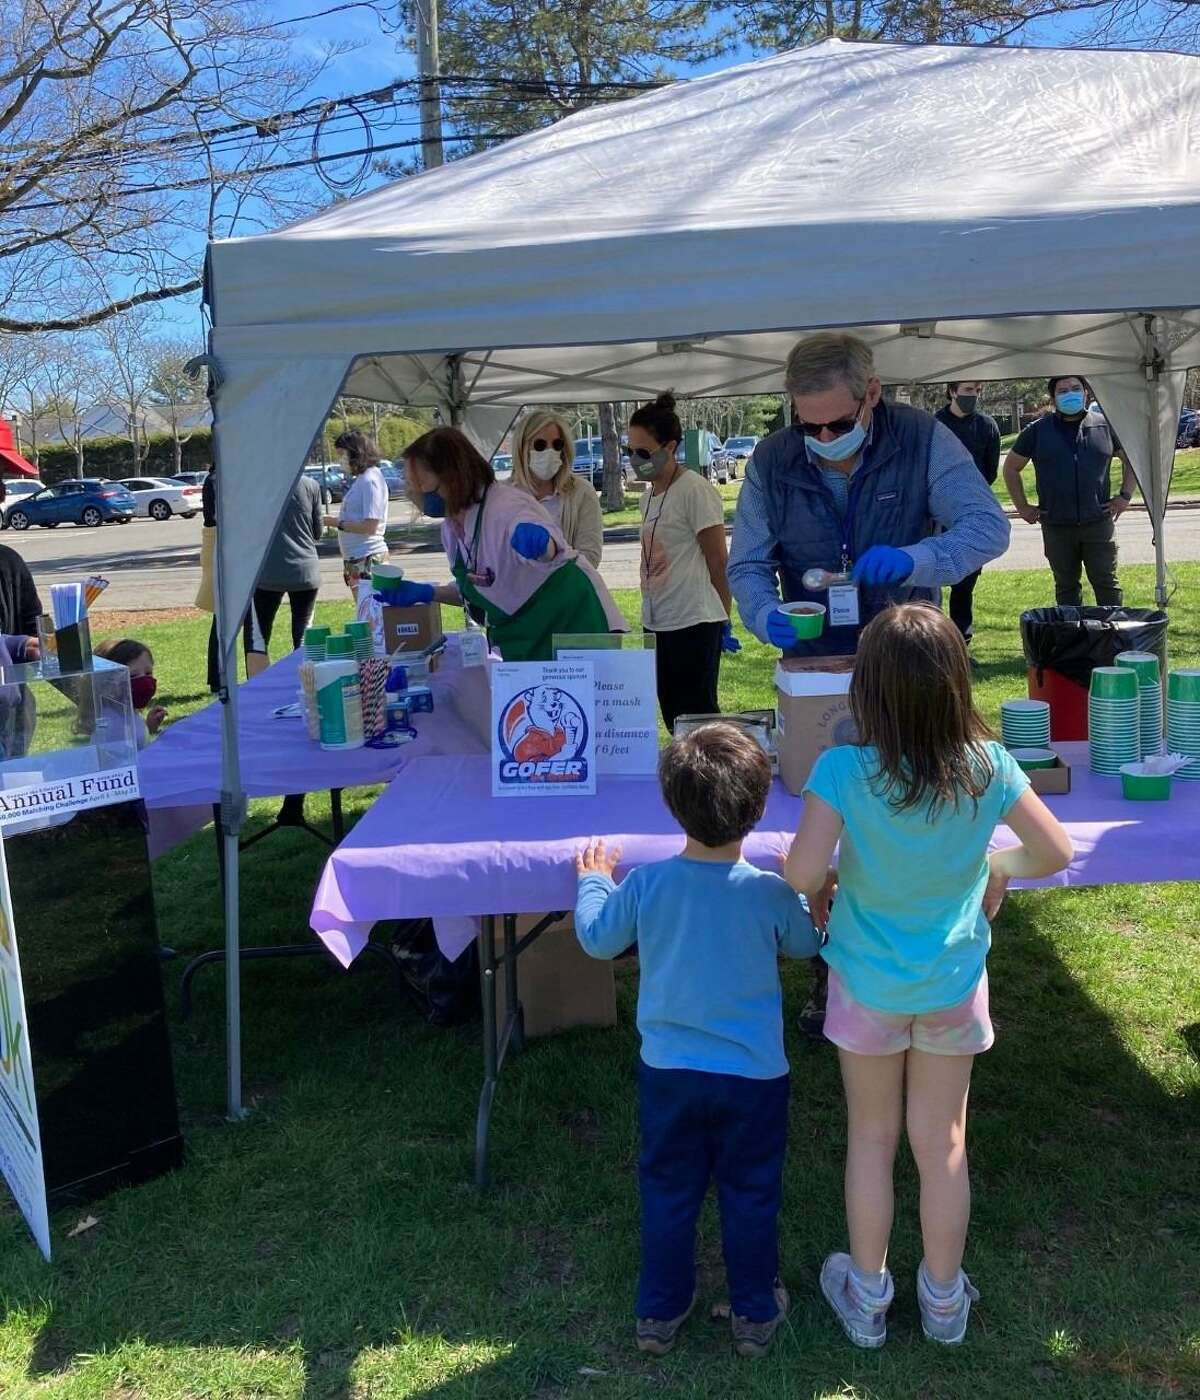 National Library Giving Day. April 7, included a fun ice cream social to give back to the community. New Canaan Board of Trustees Member Peter Zeising scooped up the treats for kids, and their families. Ice cream was generously donated by Gofer Ice Cream.